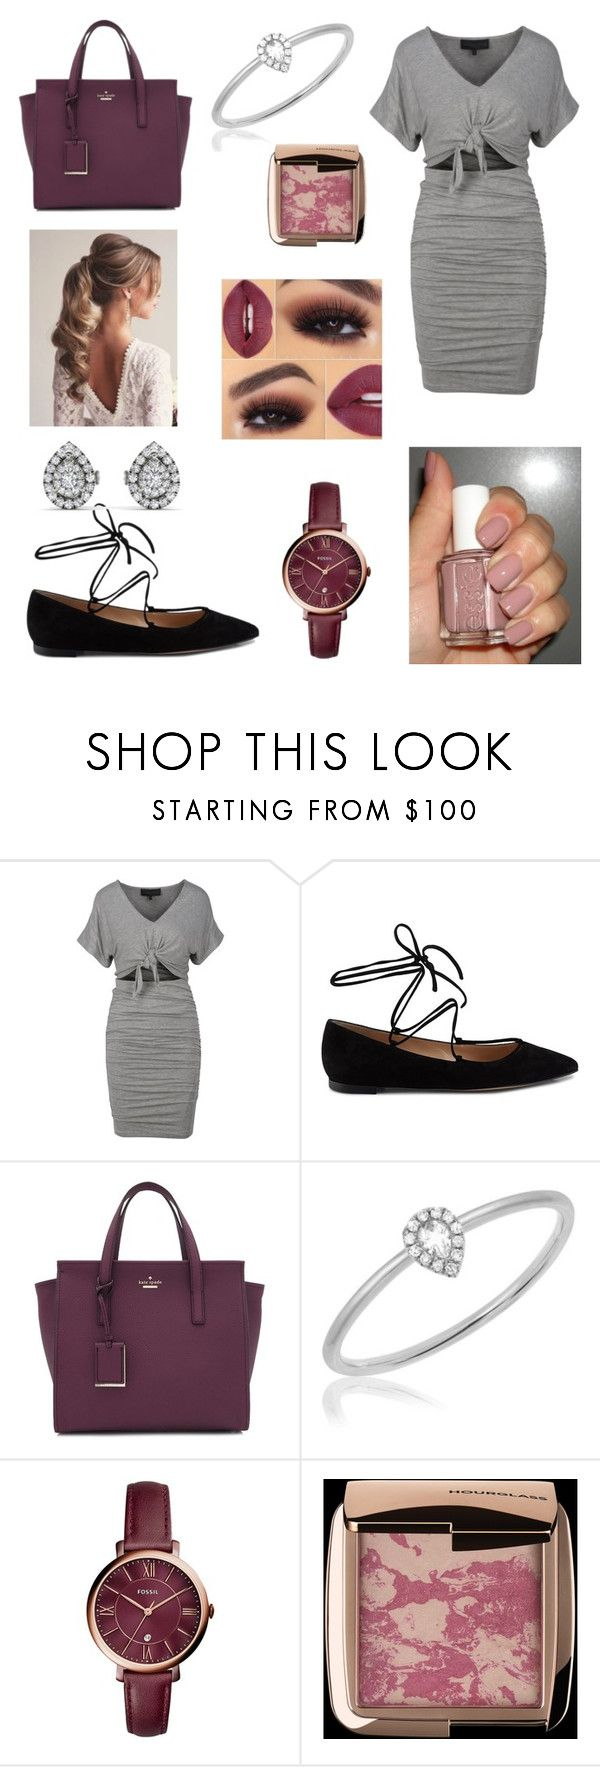 """""""Fancy Dinner Date"""" by emilys-closet17 ❤ liked on Polyvore featuring Gianvito Rossi, Kate Spade, Essie, EF Collection, FOSSIL, Hourglass Cosmetics and Anastasia Beverly Hills"""